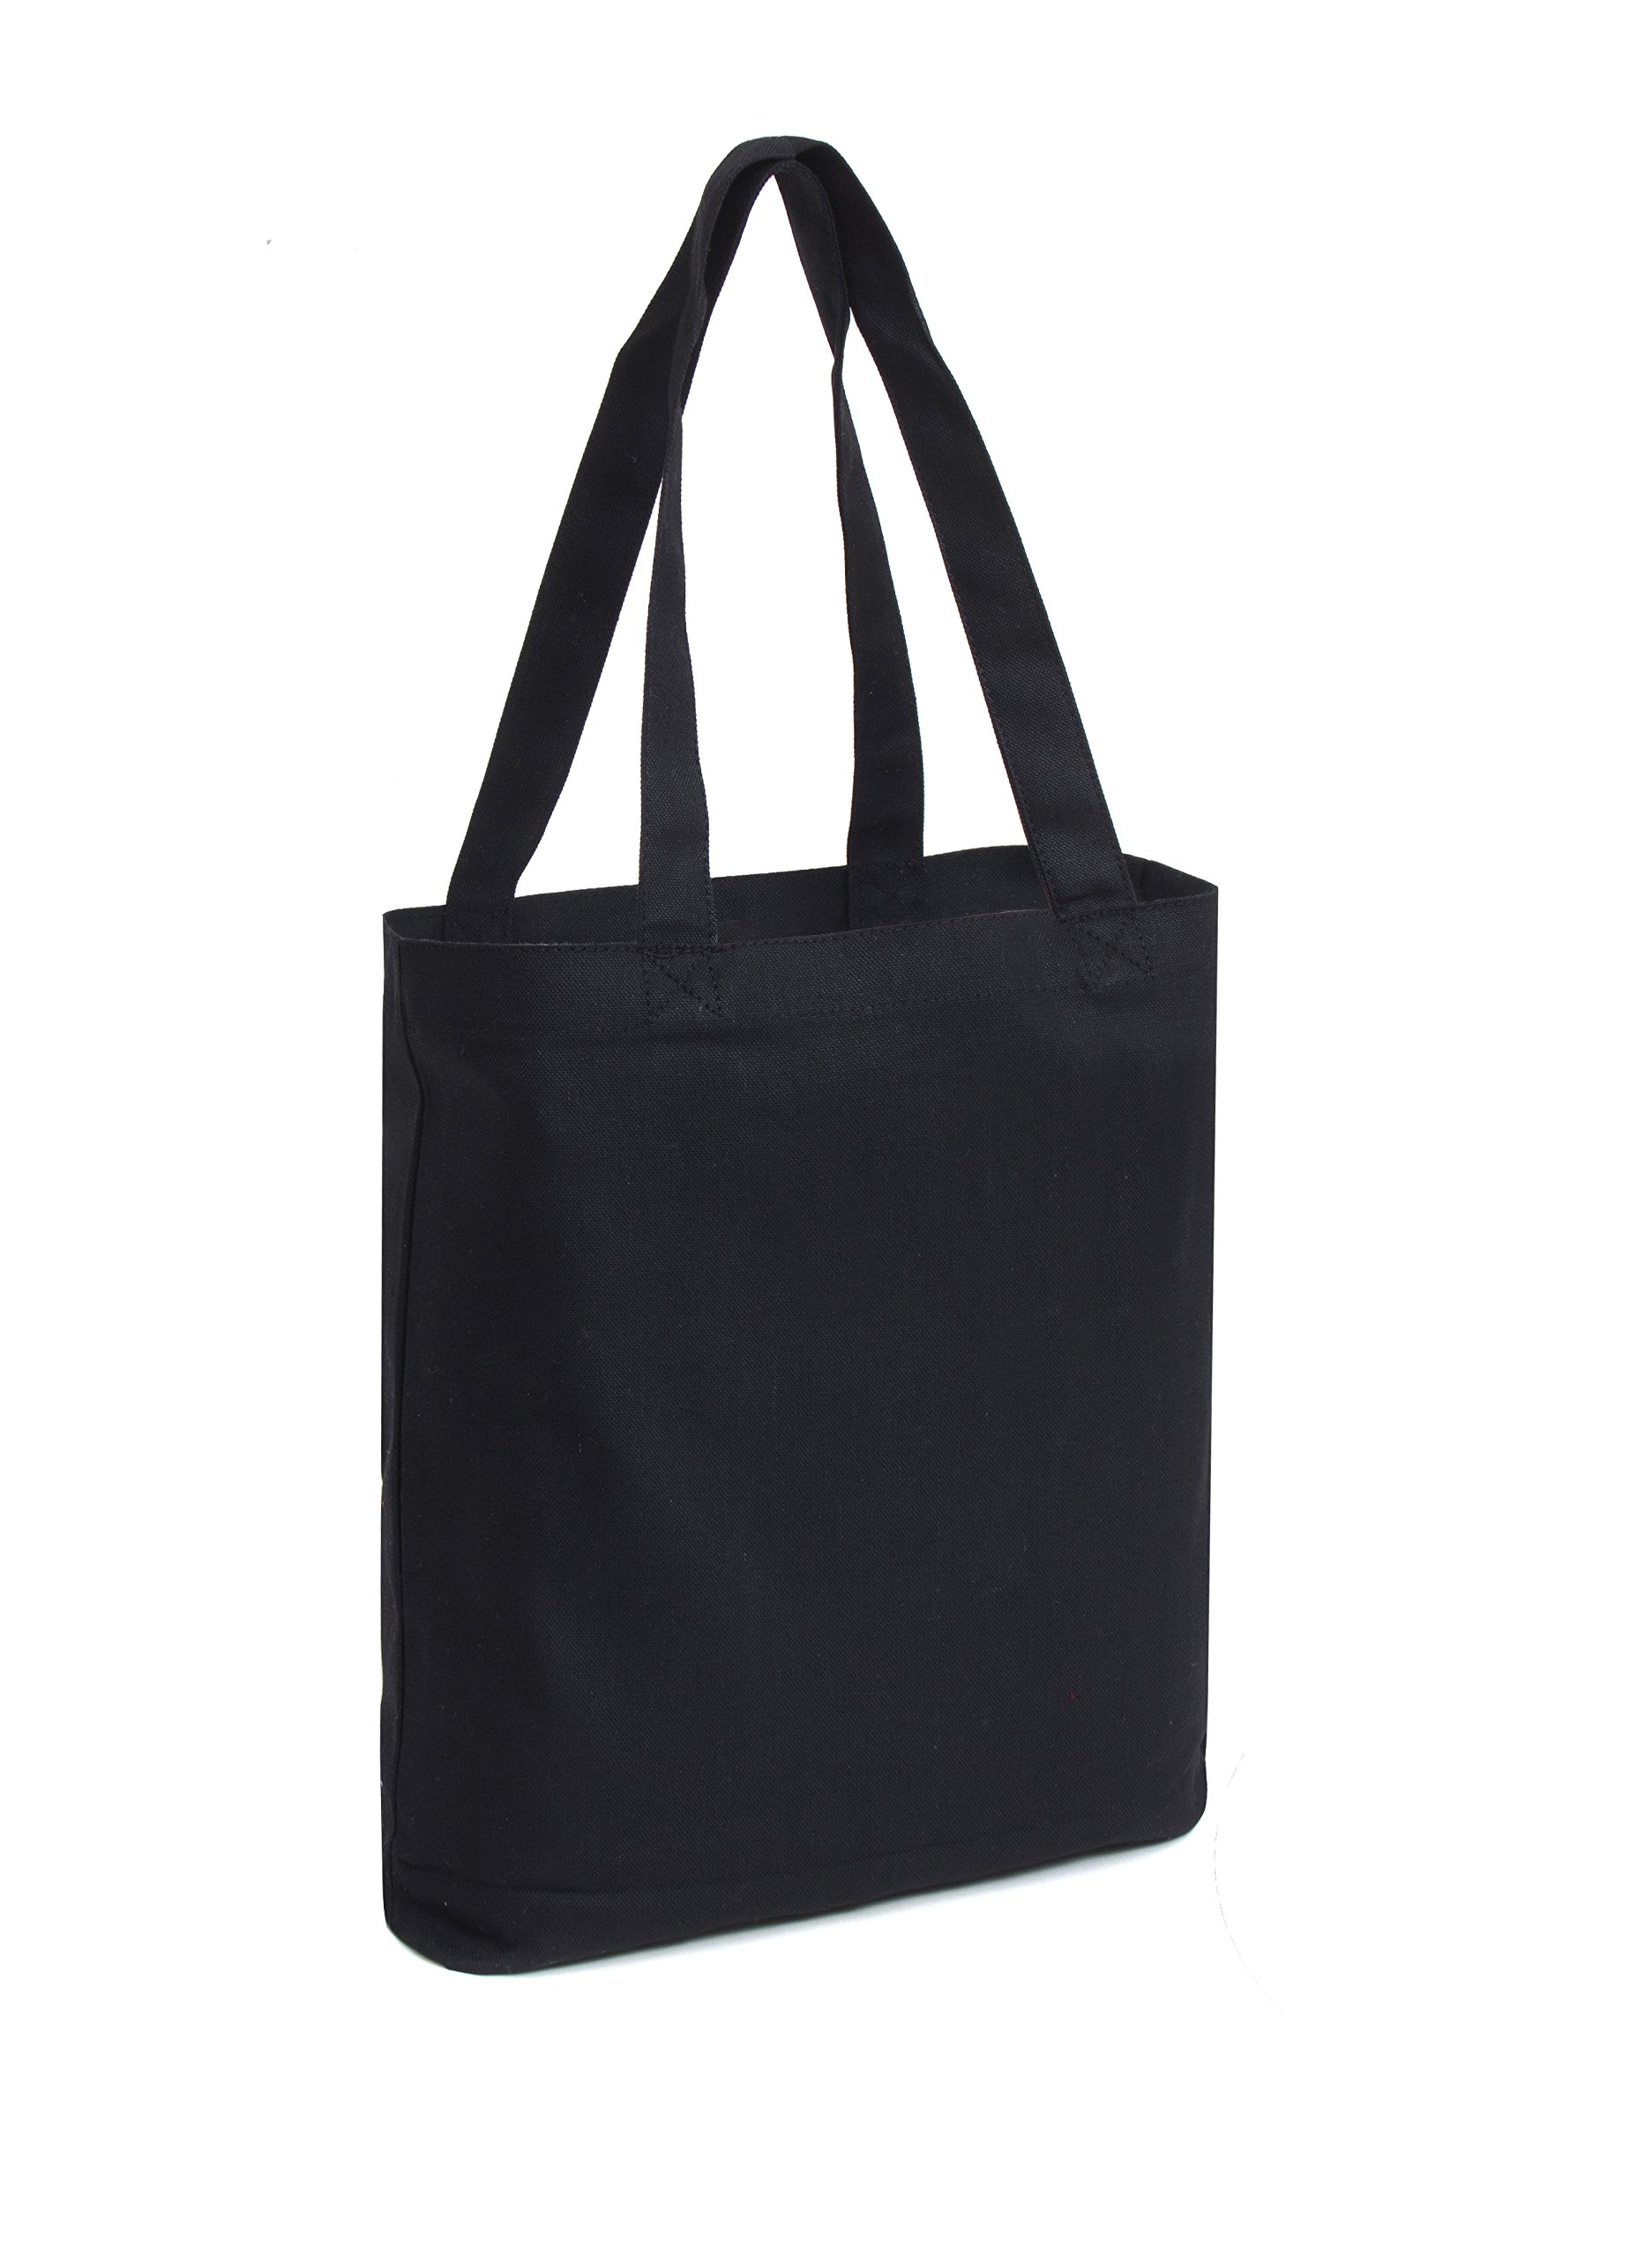 Set of 12 - Medium Tote Bag 14x13x3'', Black, 100% Cotton Canvas by Bumble Crafts (Image #3)